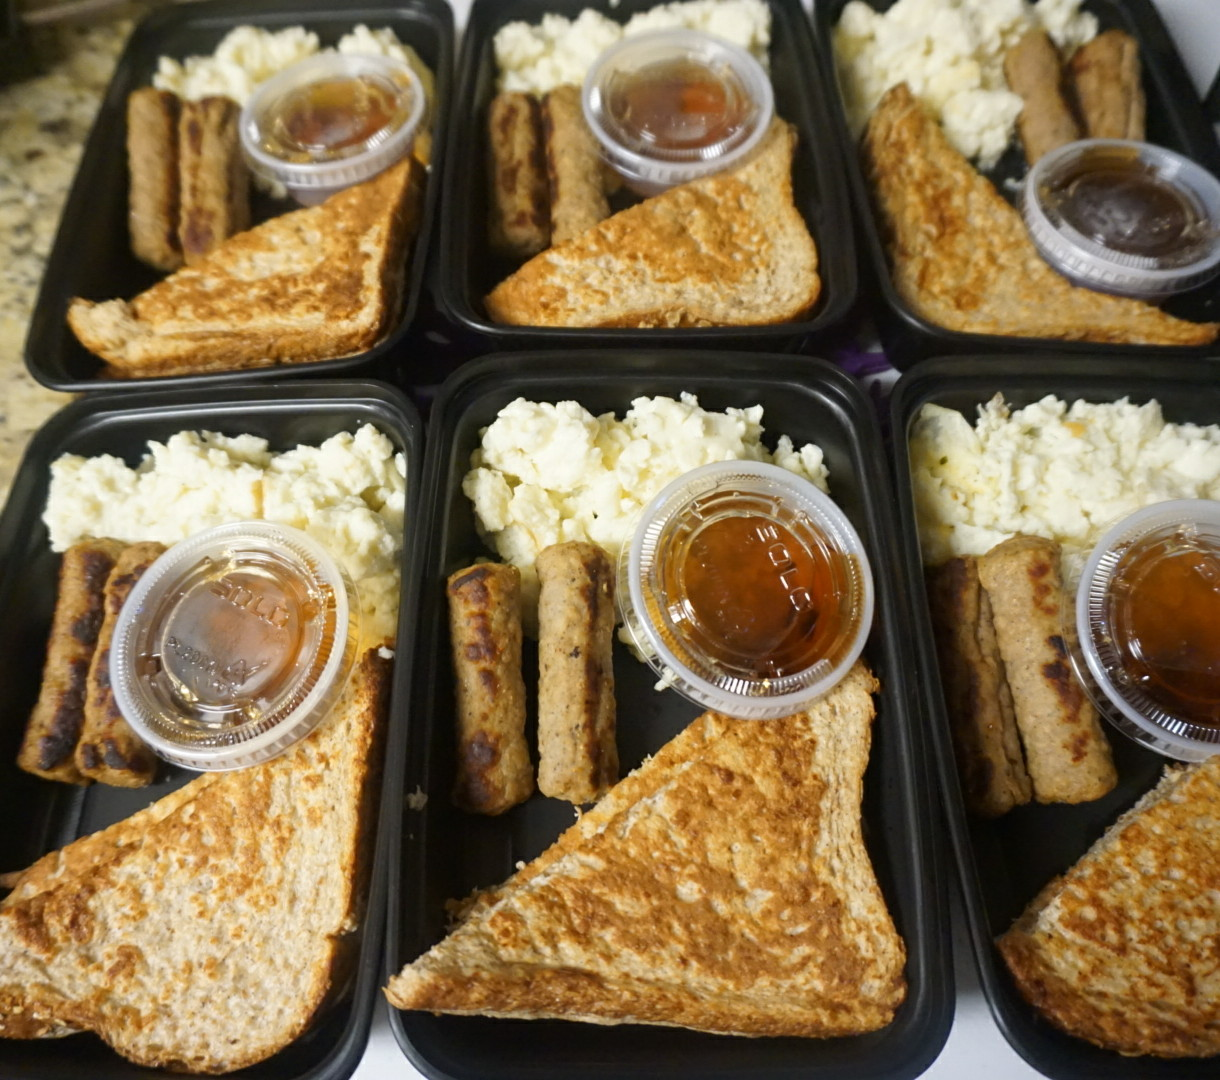 Vanilla Protein French Toast  Protein packed French Toast served with scrambled egg whites and turkey links. Served with a side of sugar free maple syrup